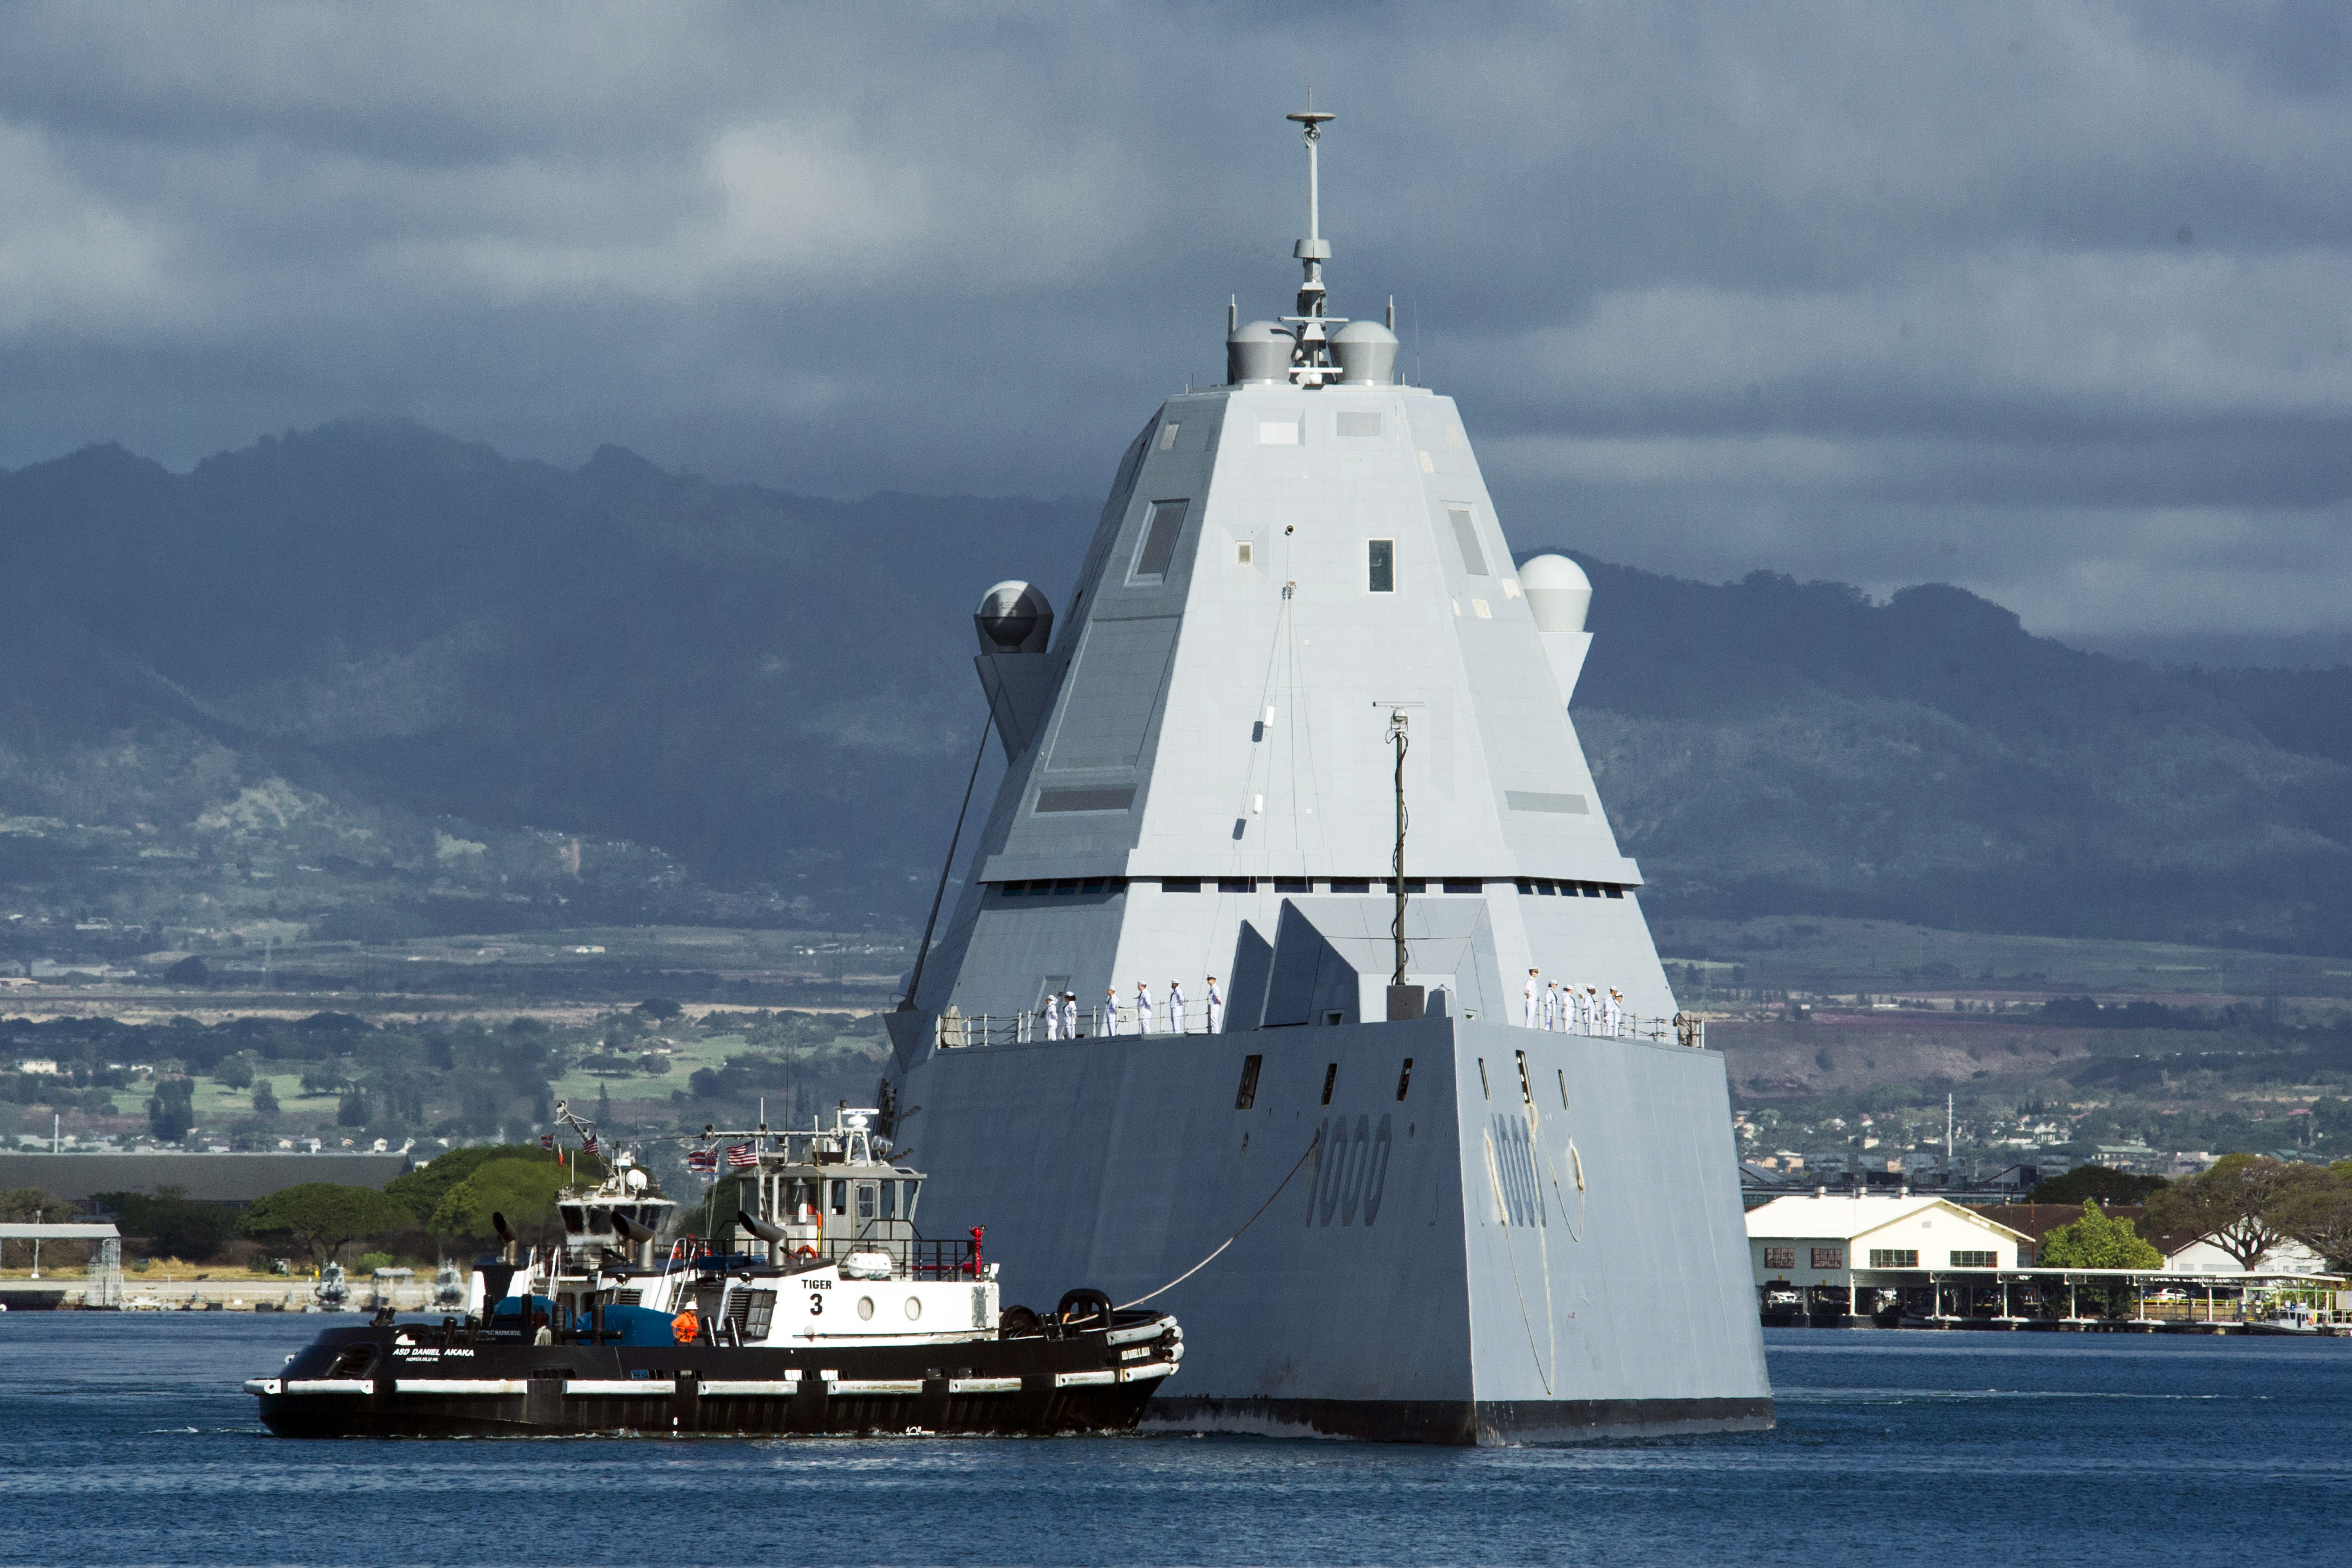 The lead ship of the U.S. Navy's newest class of guided-missile destroyers, the USS Zumwalt (DDG-1000), is assisted by a tugboat at Joint Base Pearl Harbor-Hickam in Honolulu on April 2, 2019.